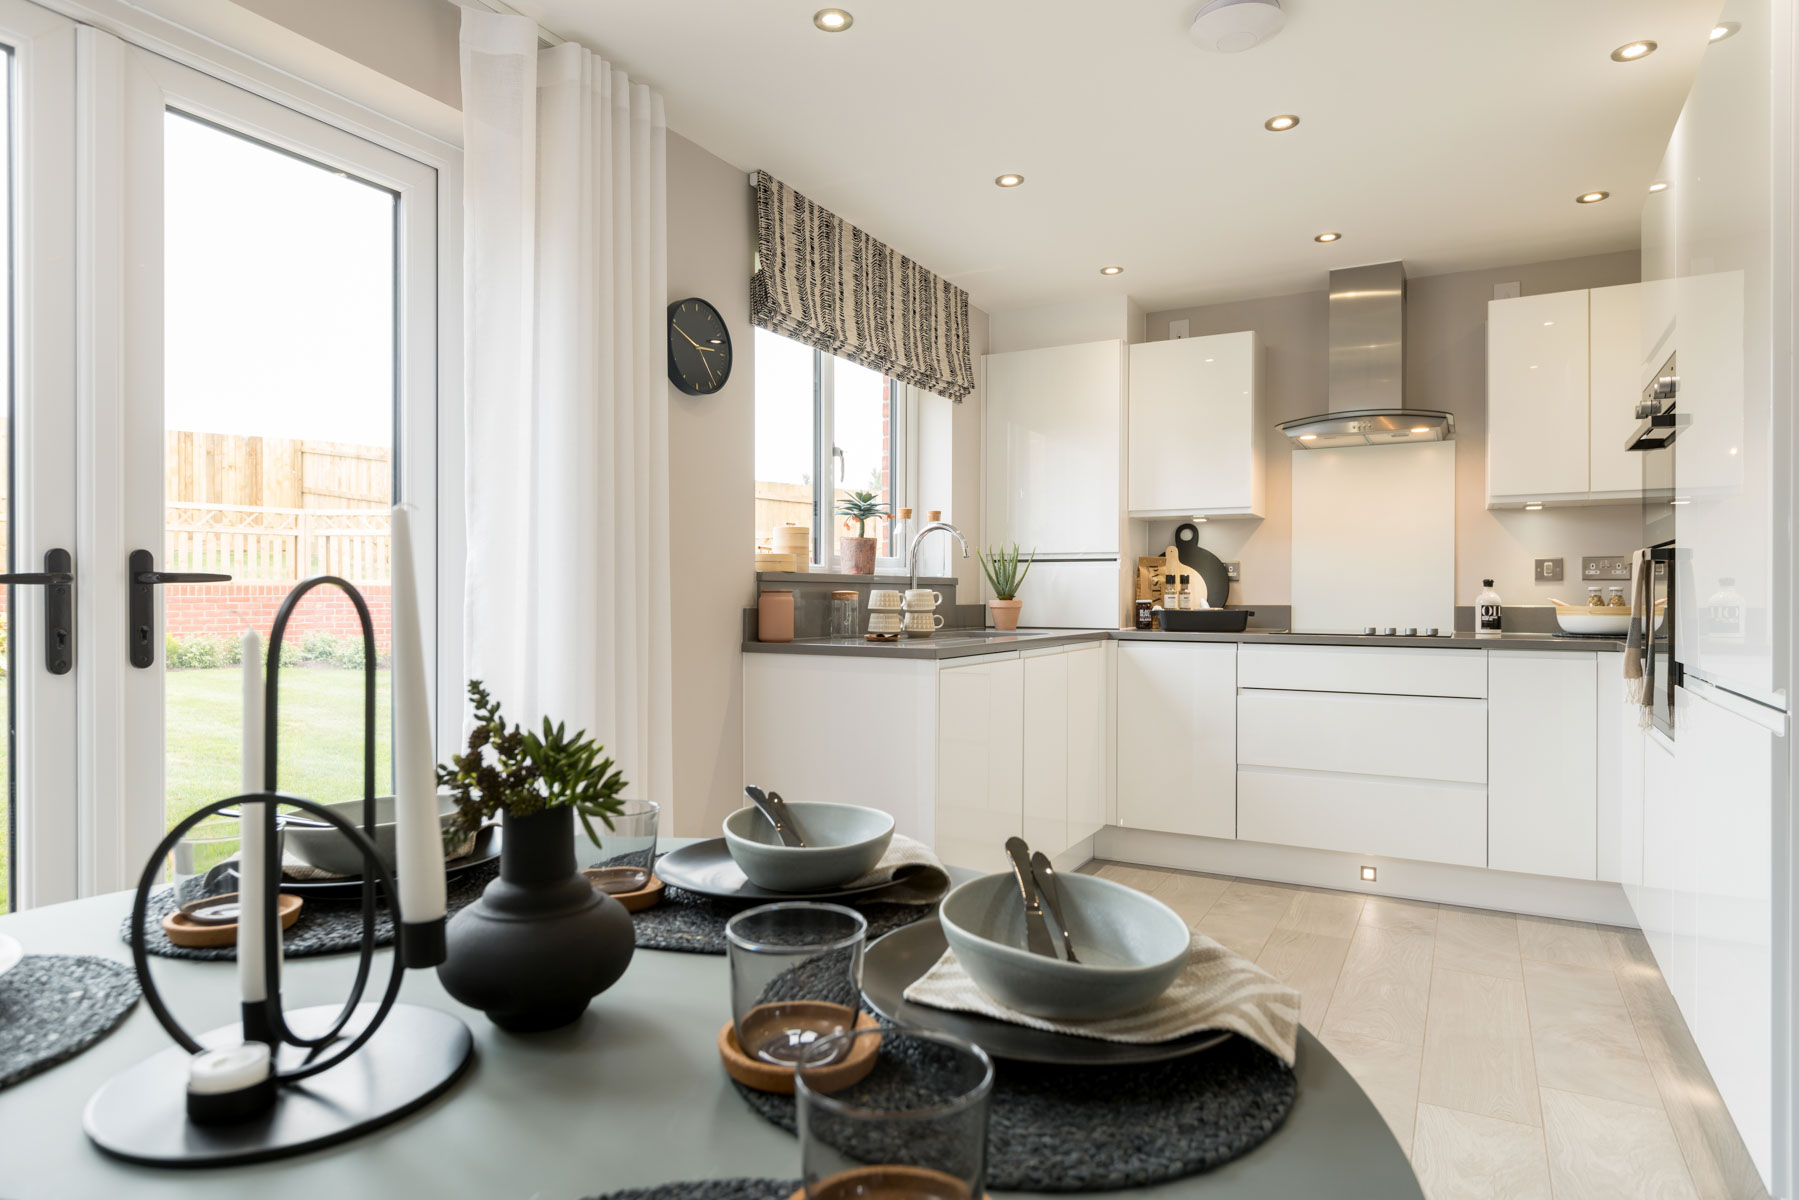 Taylor Wimpey - Mayfield Gardens - Byford kitchen